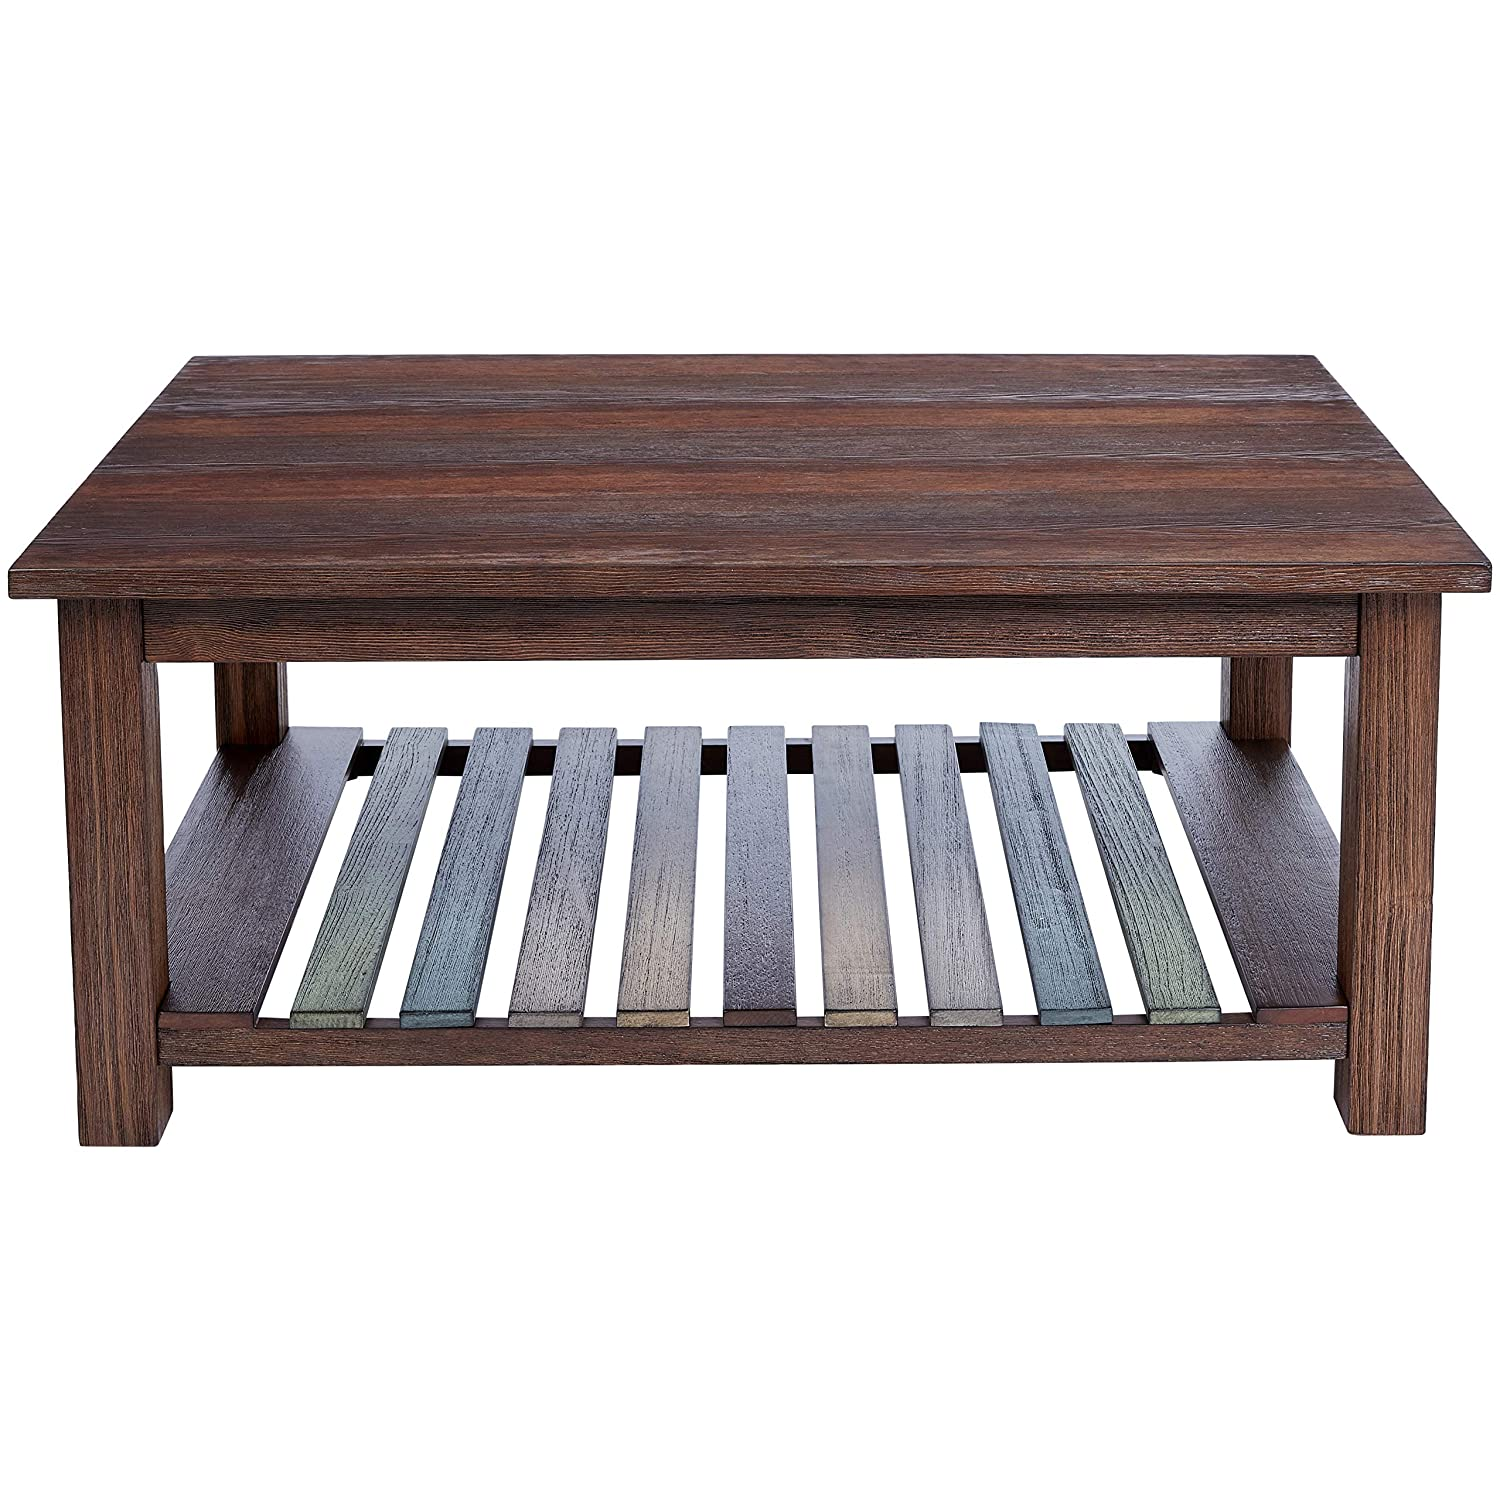 Ball Cast Densmore Wood Coffee Table with Lower Slatted Shelf, Burnt Sugar